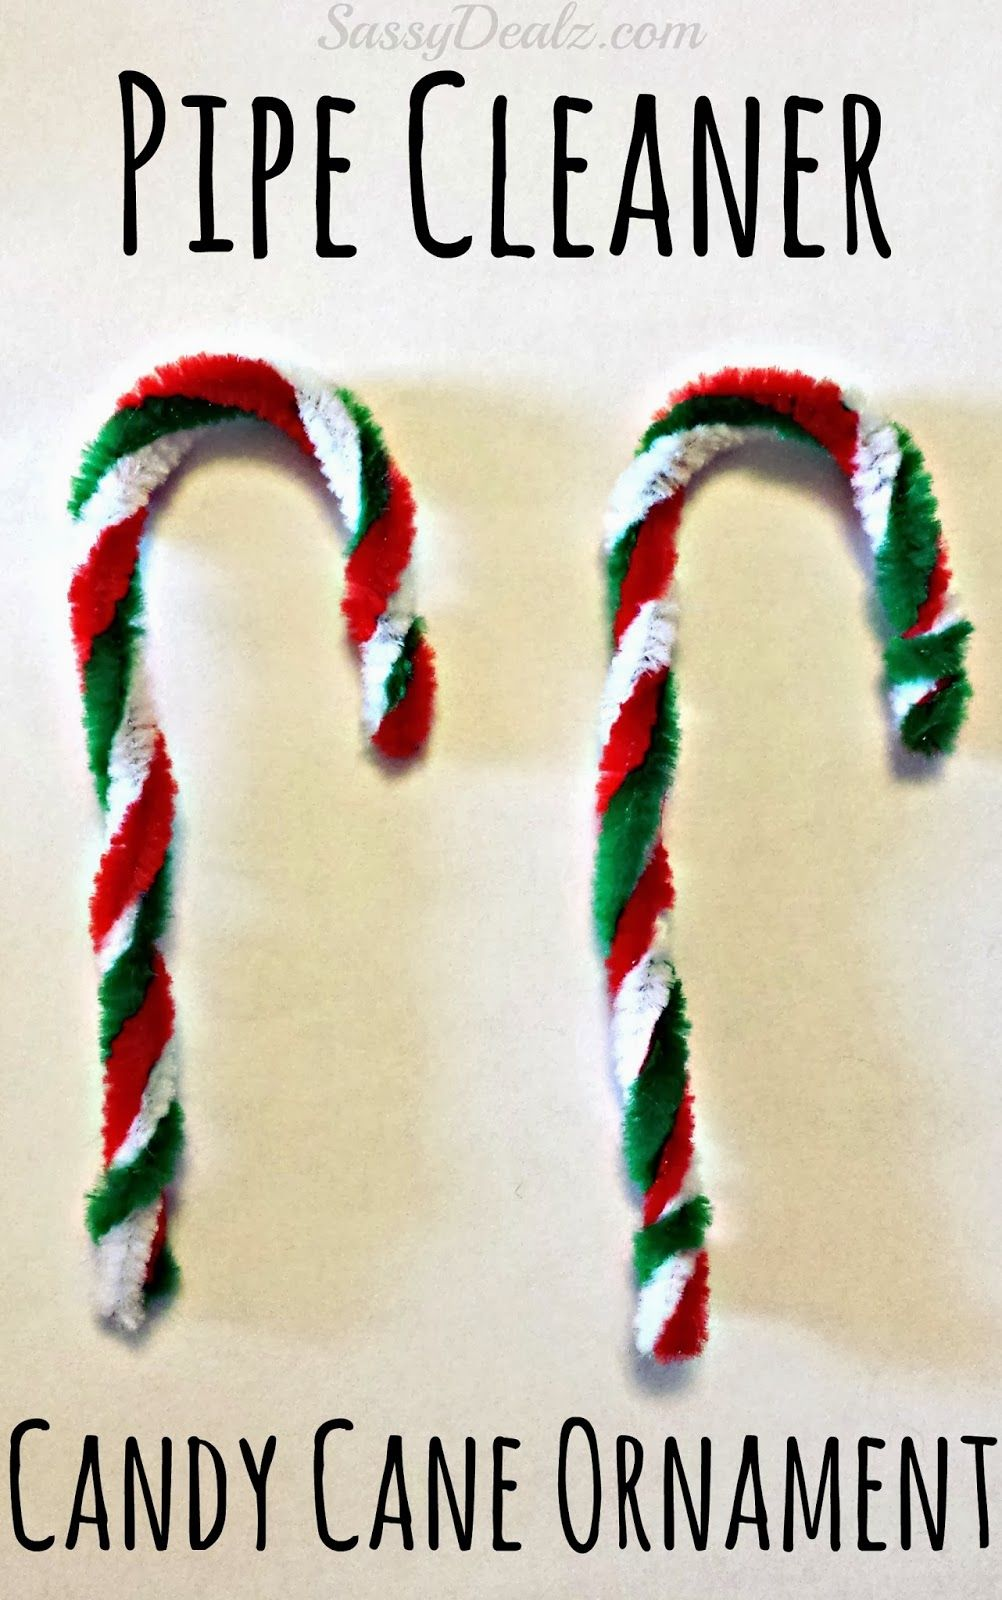 Christmas Craft Ideas With Candy Canes Part - 27: Xmas Crafts · Pipe Cleaner Candy Cane Ornament